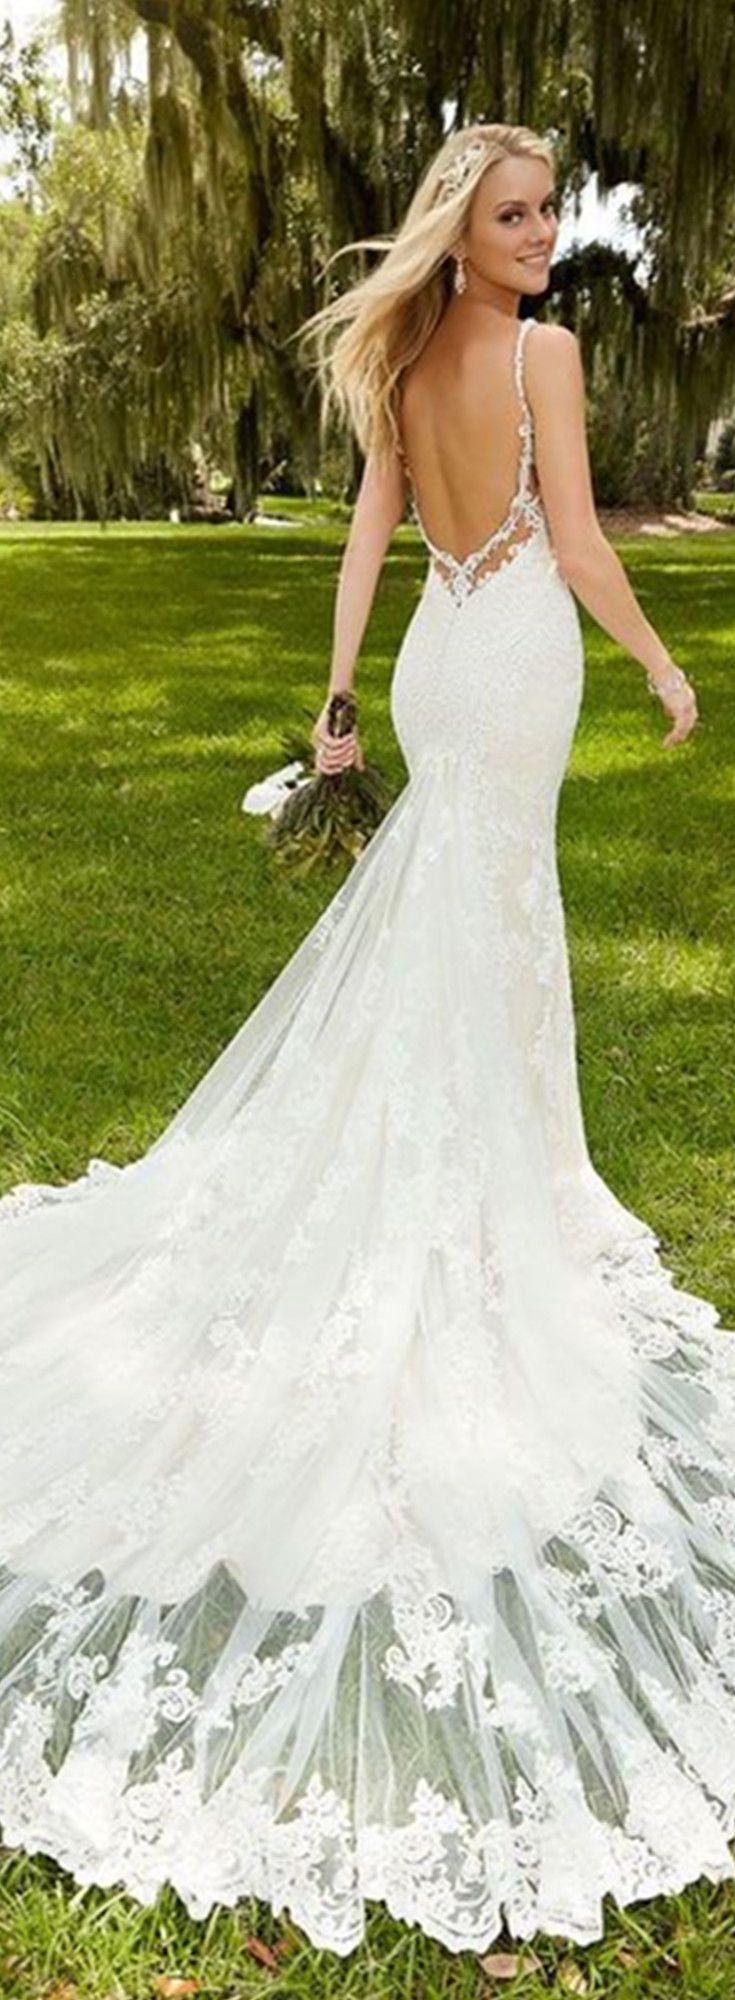 Preowned wedding dresses wedding dresses pinterest lace